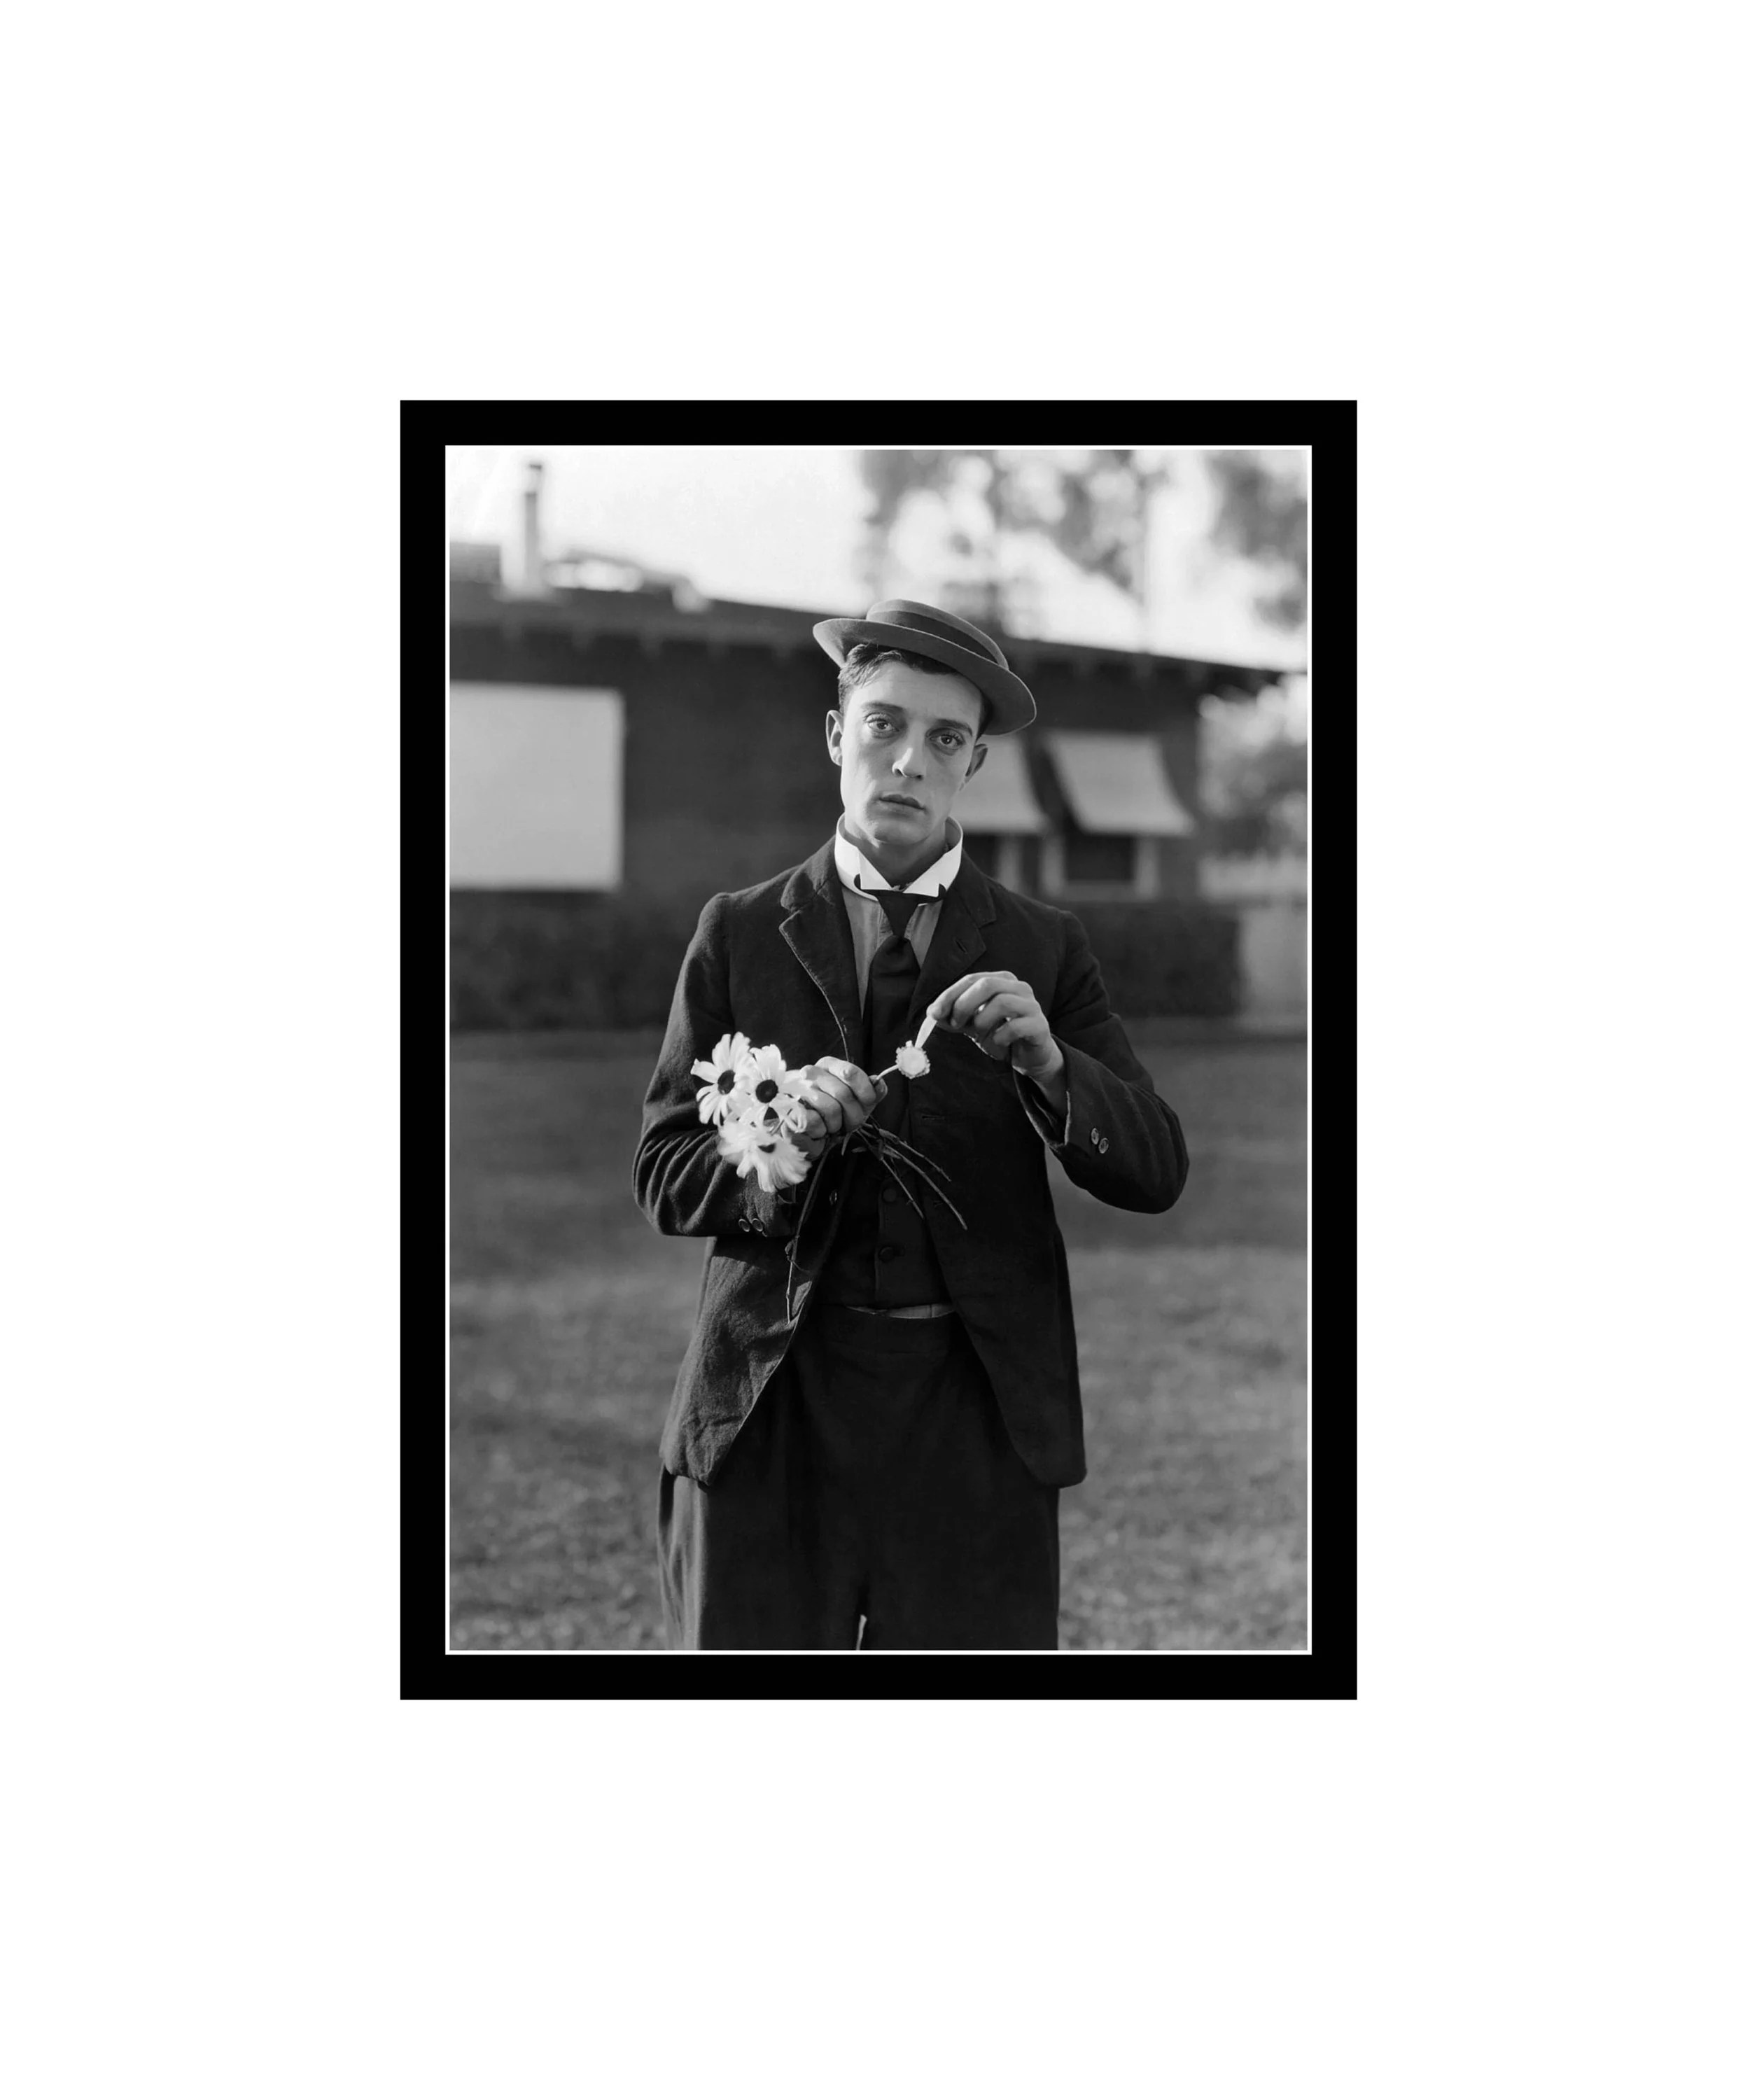 buster keaton poster etsy